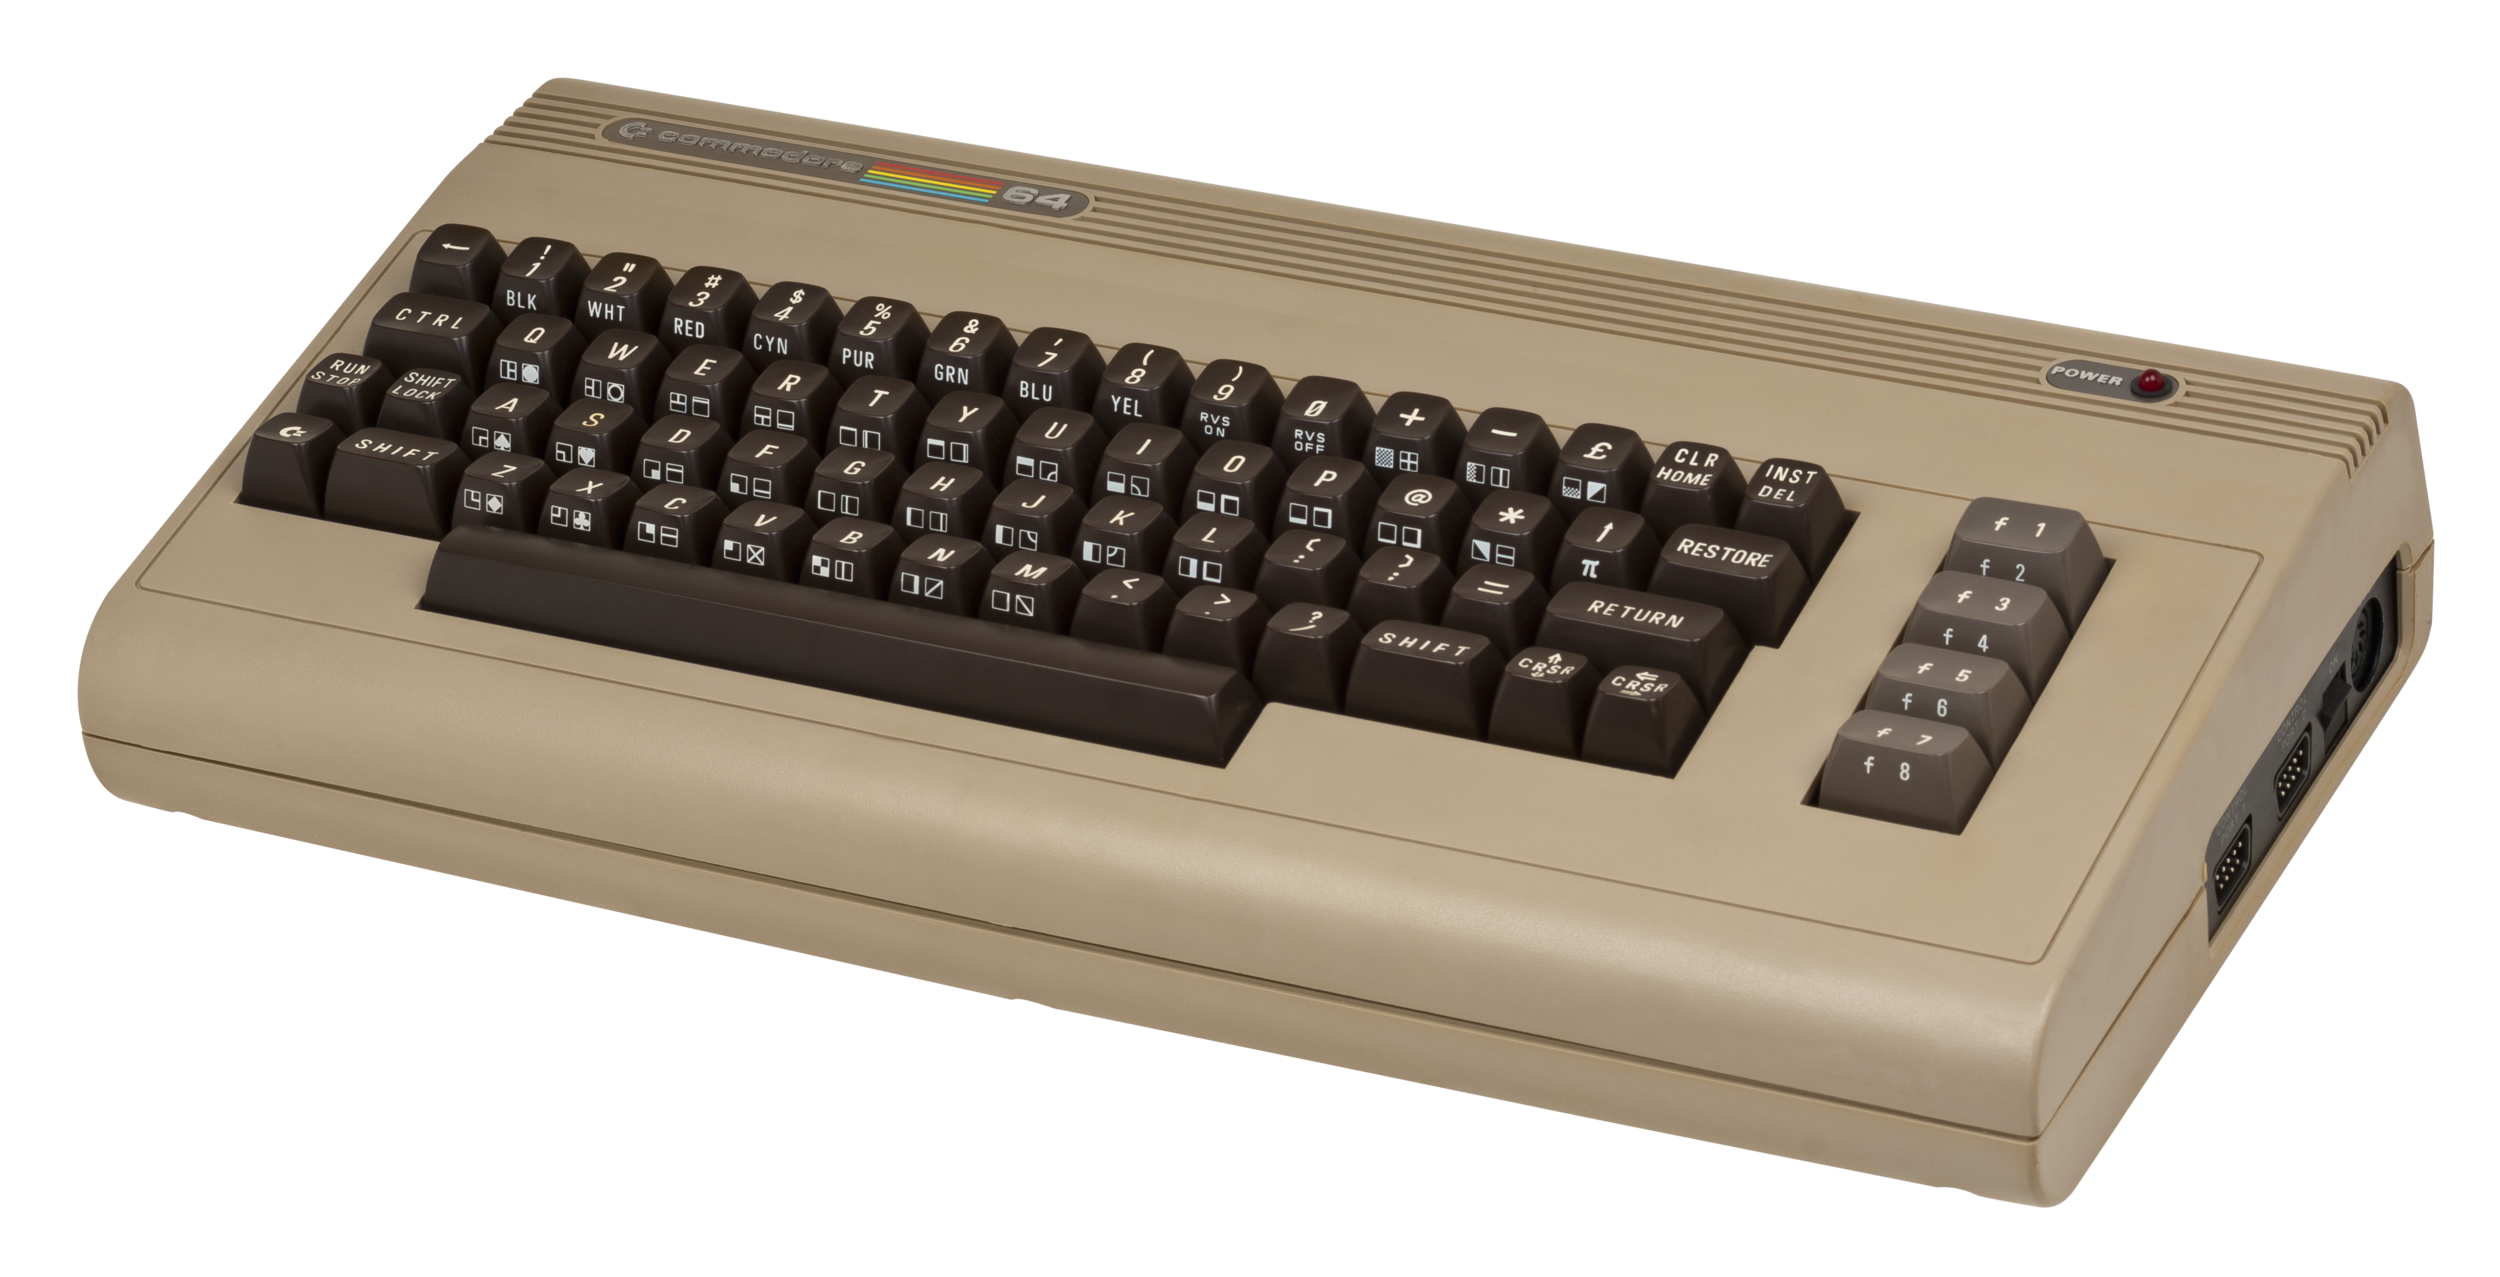 (image: Wikipedia, https://upload.wikimedia.org/wikipedia/commons/3/34/Commodore-64-Computer.png)